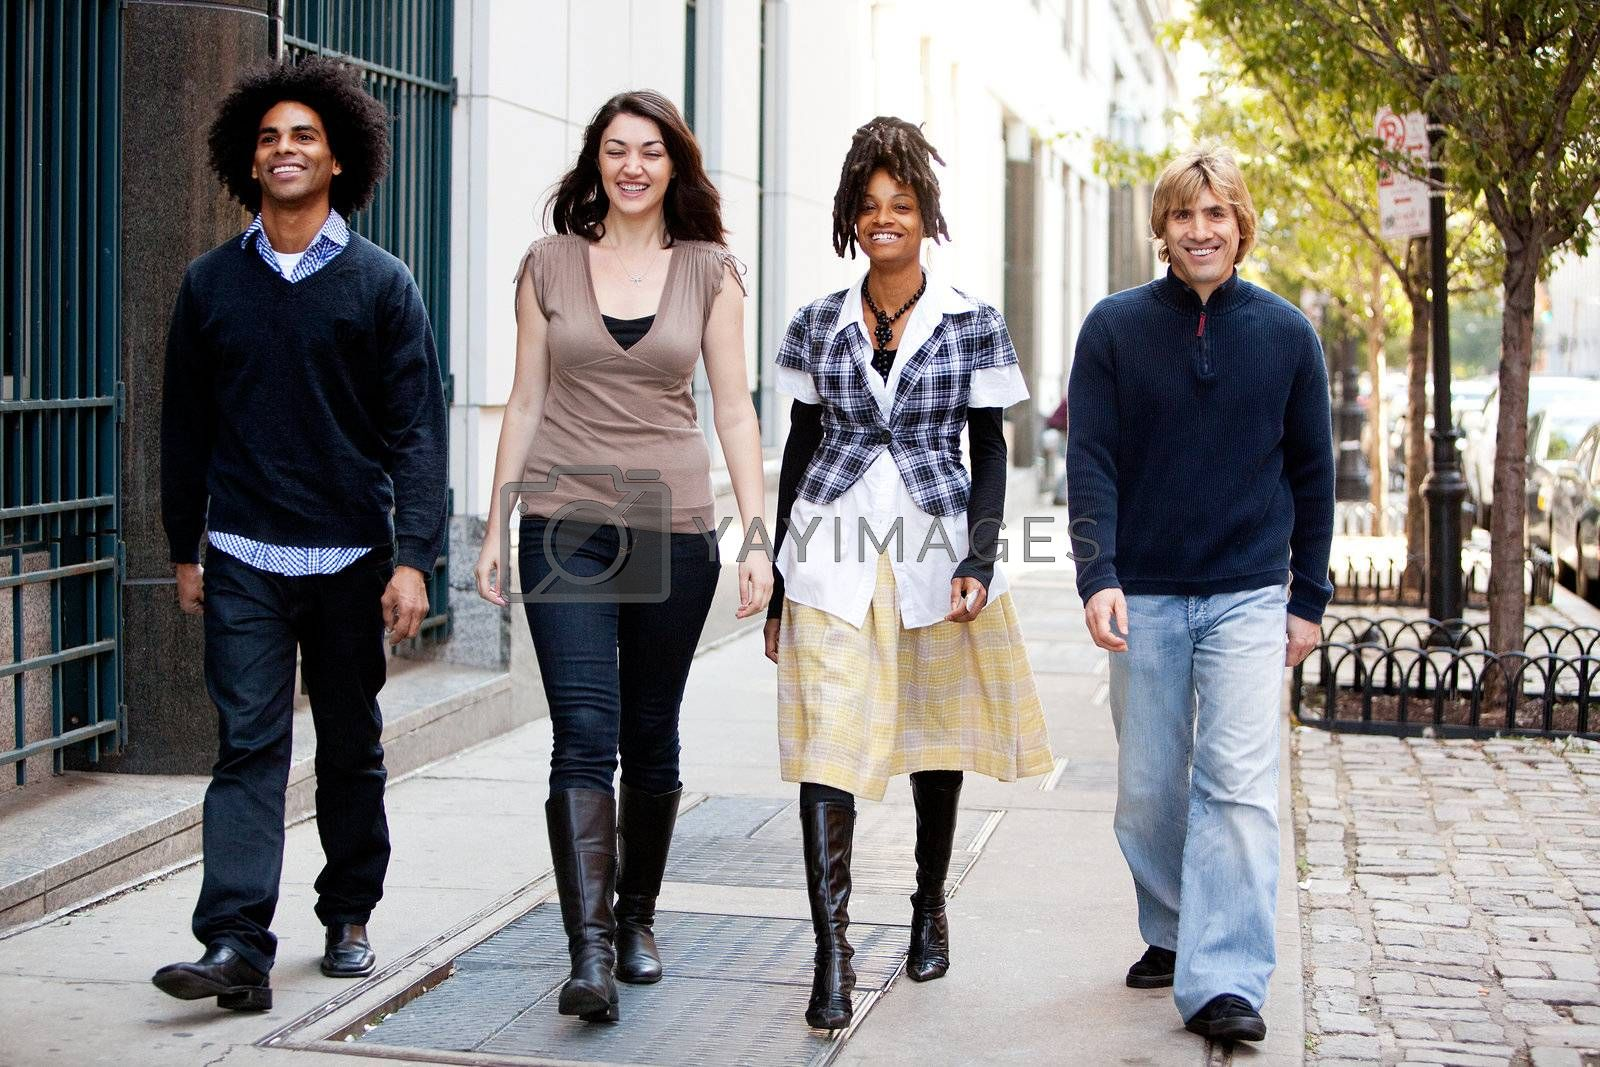 A group of friends walking on the sidewalk in an urban setting